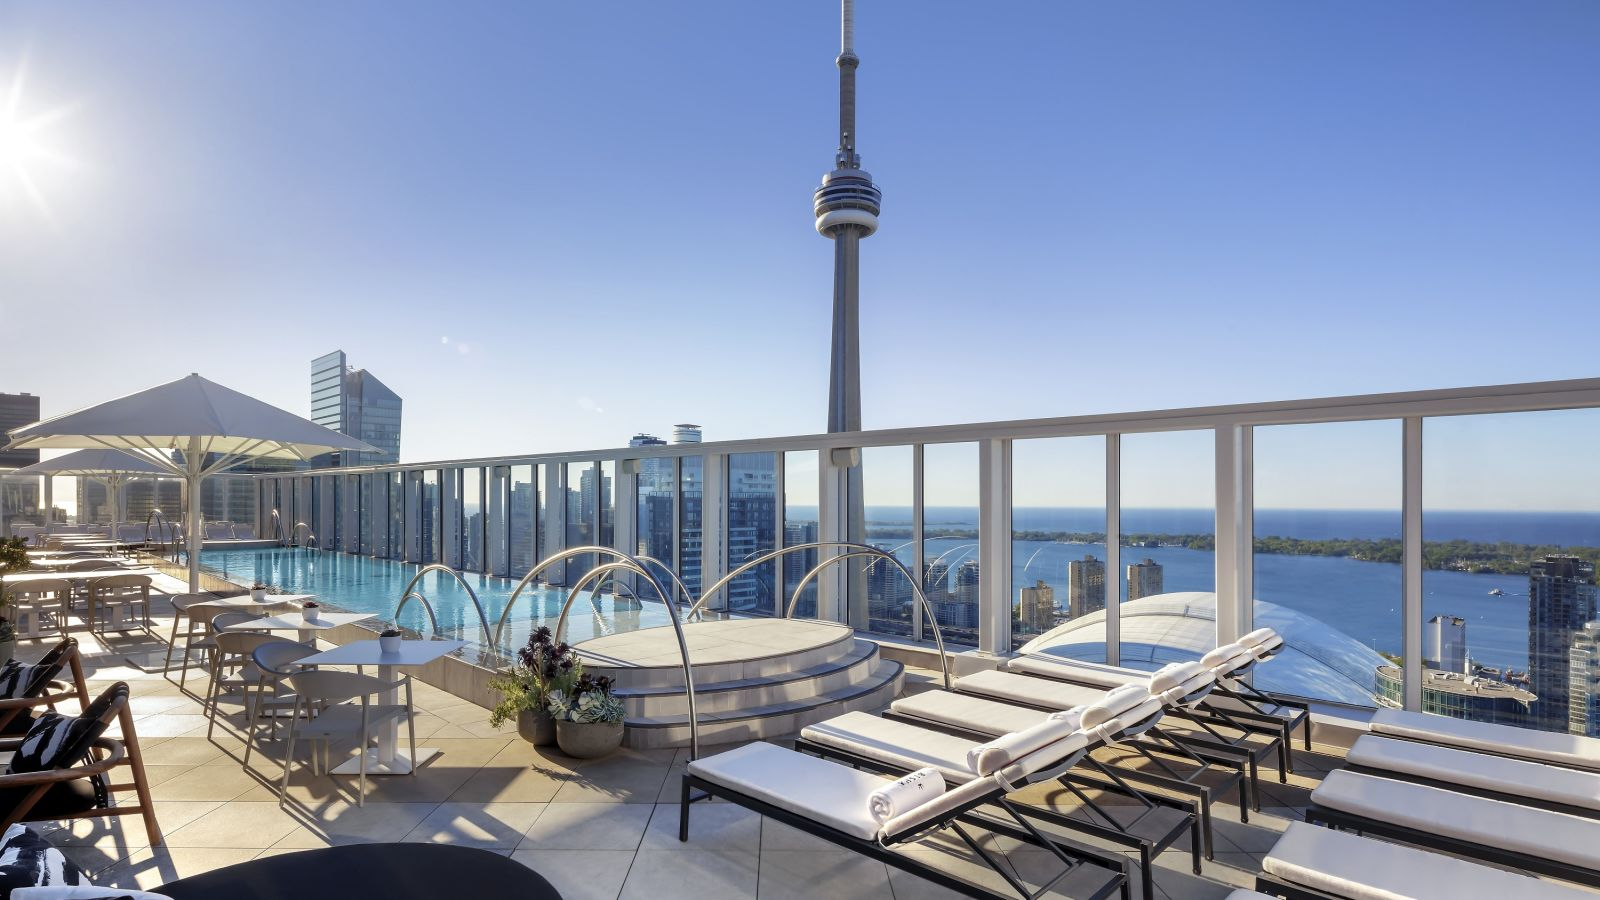 Bisha Hotel & Residences: A New Boutique Luxury Hotel in Toronto